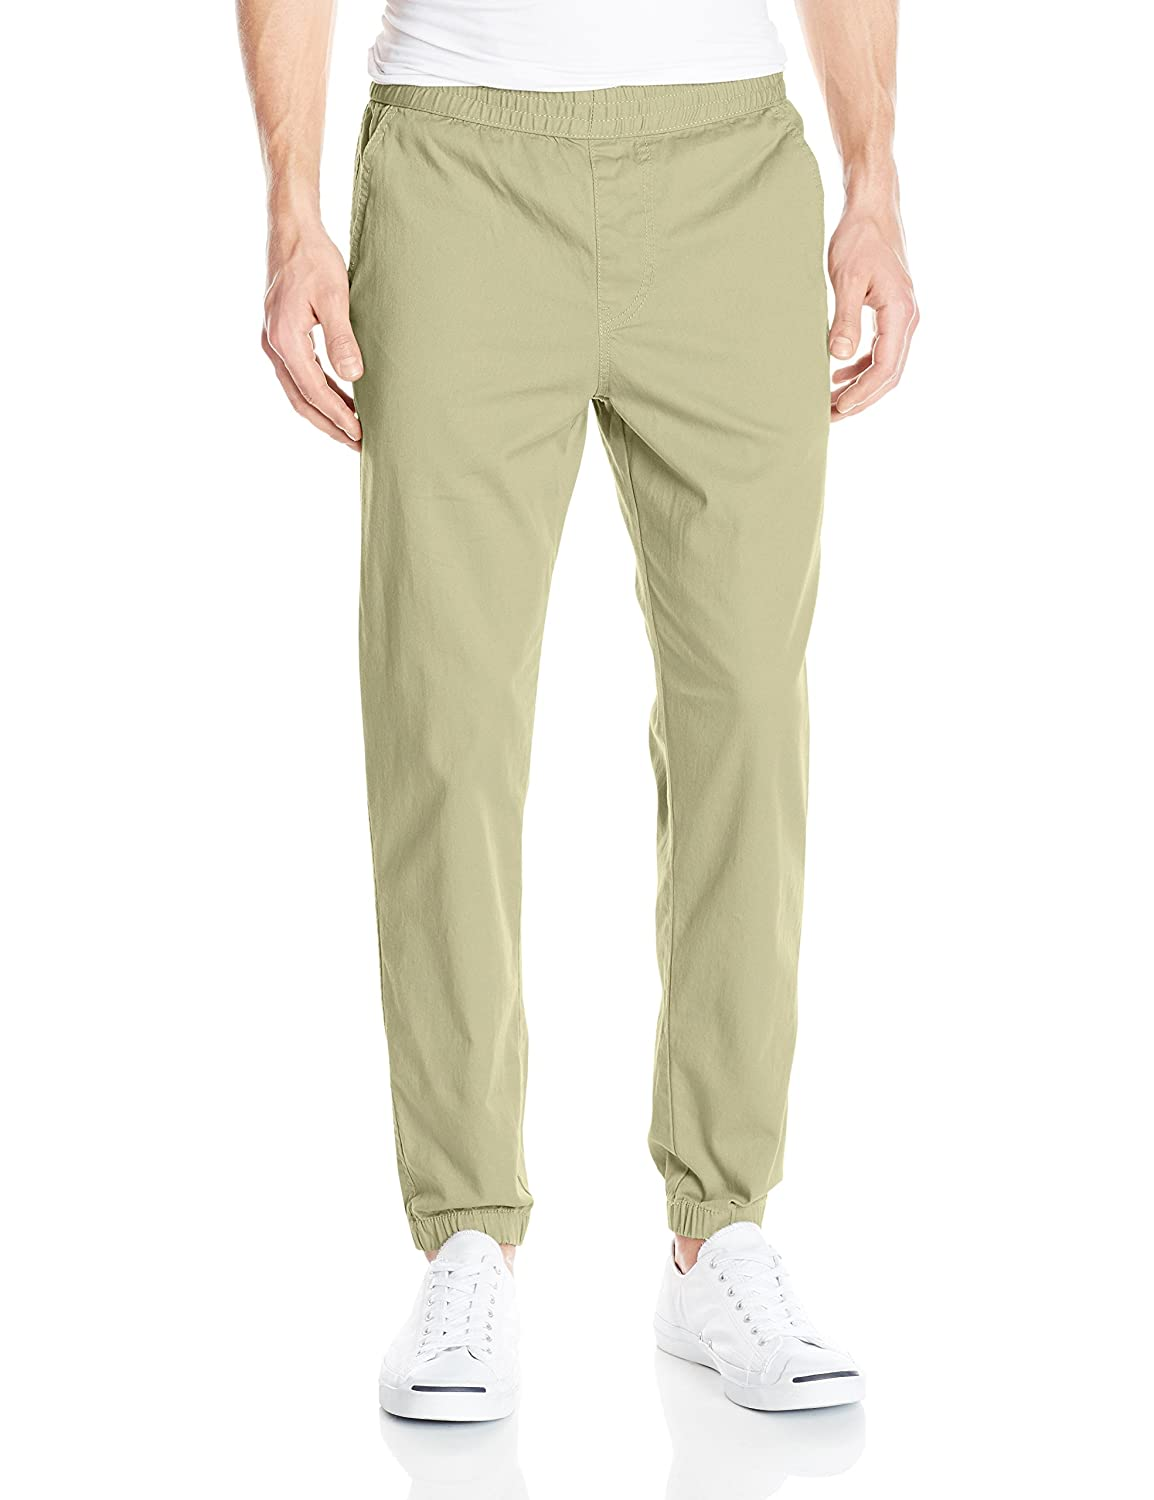 Unionbay Men's Koen Stretch Jogger Pant Unionbay Young Men's Y159R38